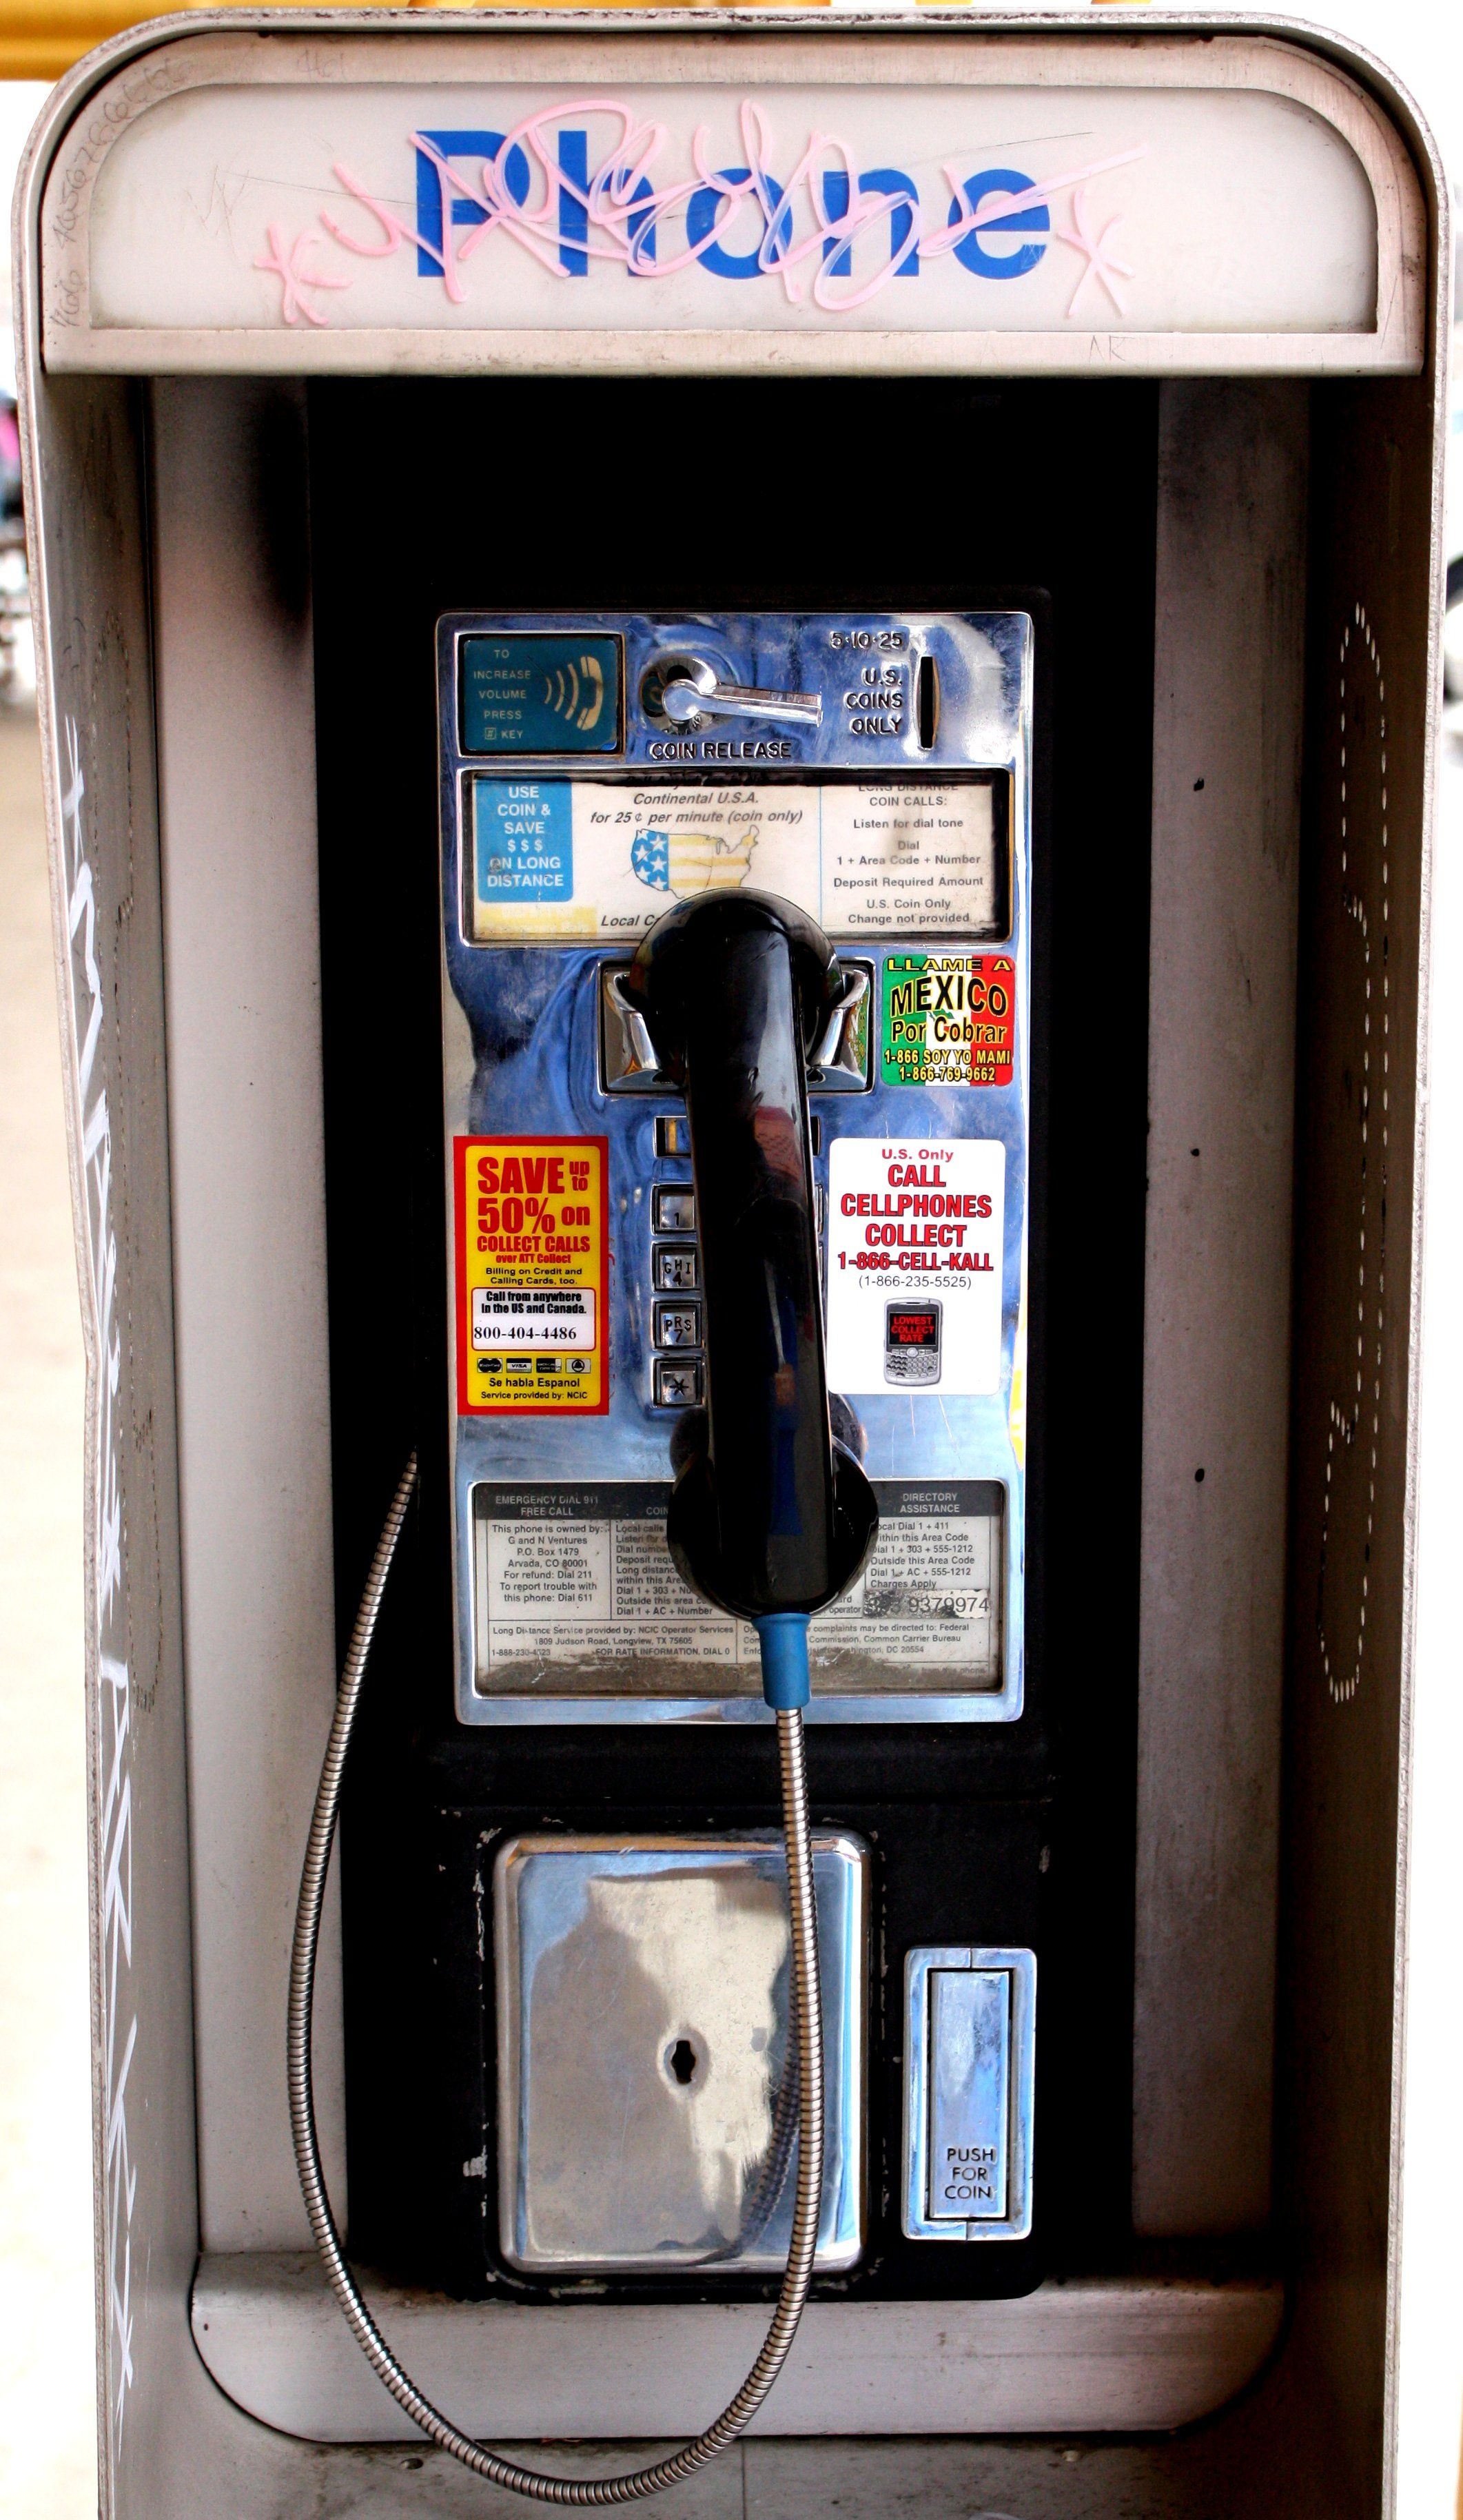 Pay Phone I remember when they were